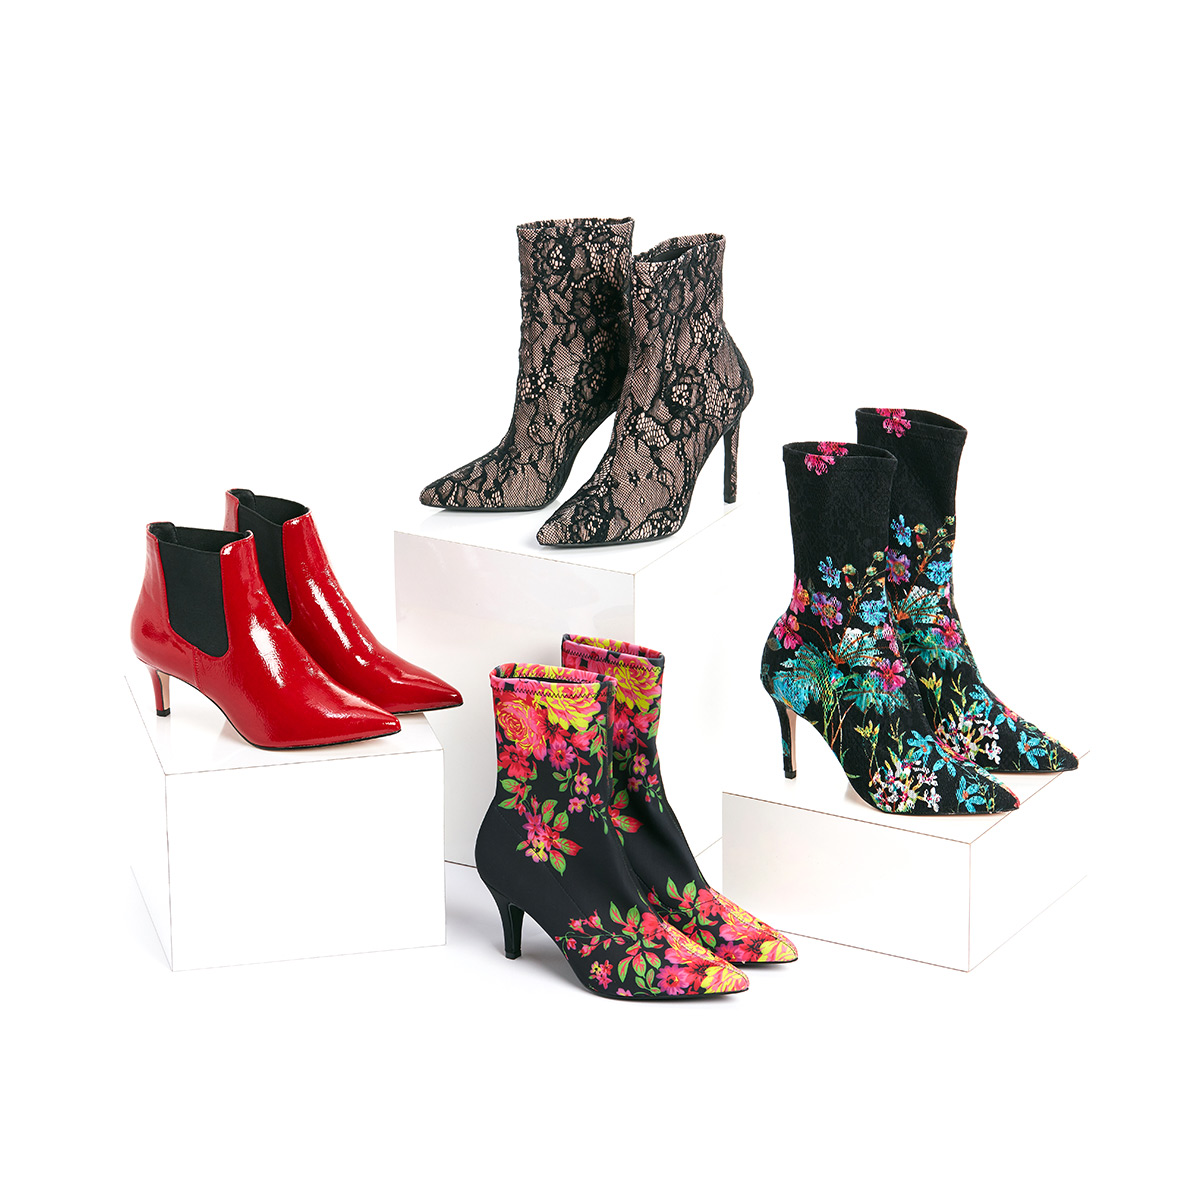 Four pairs of women's booties in bright red, lace and floral patterns stacked on white boxes on a white background.